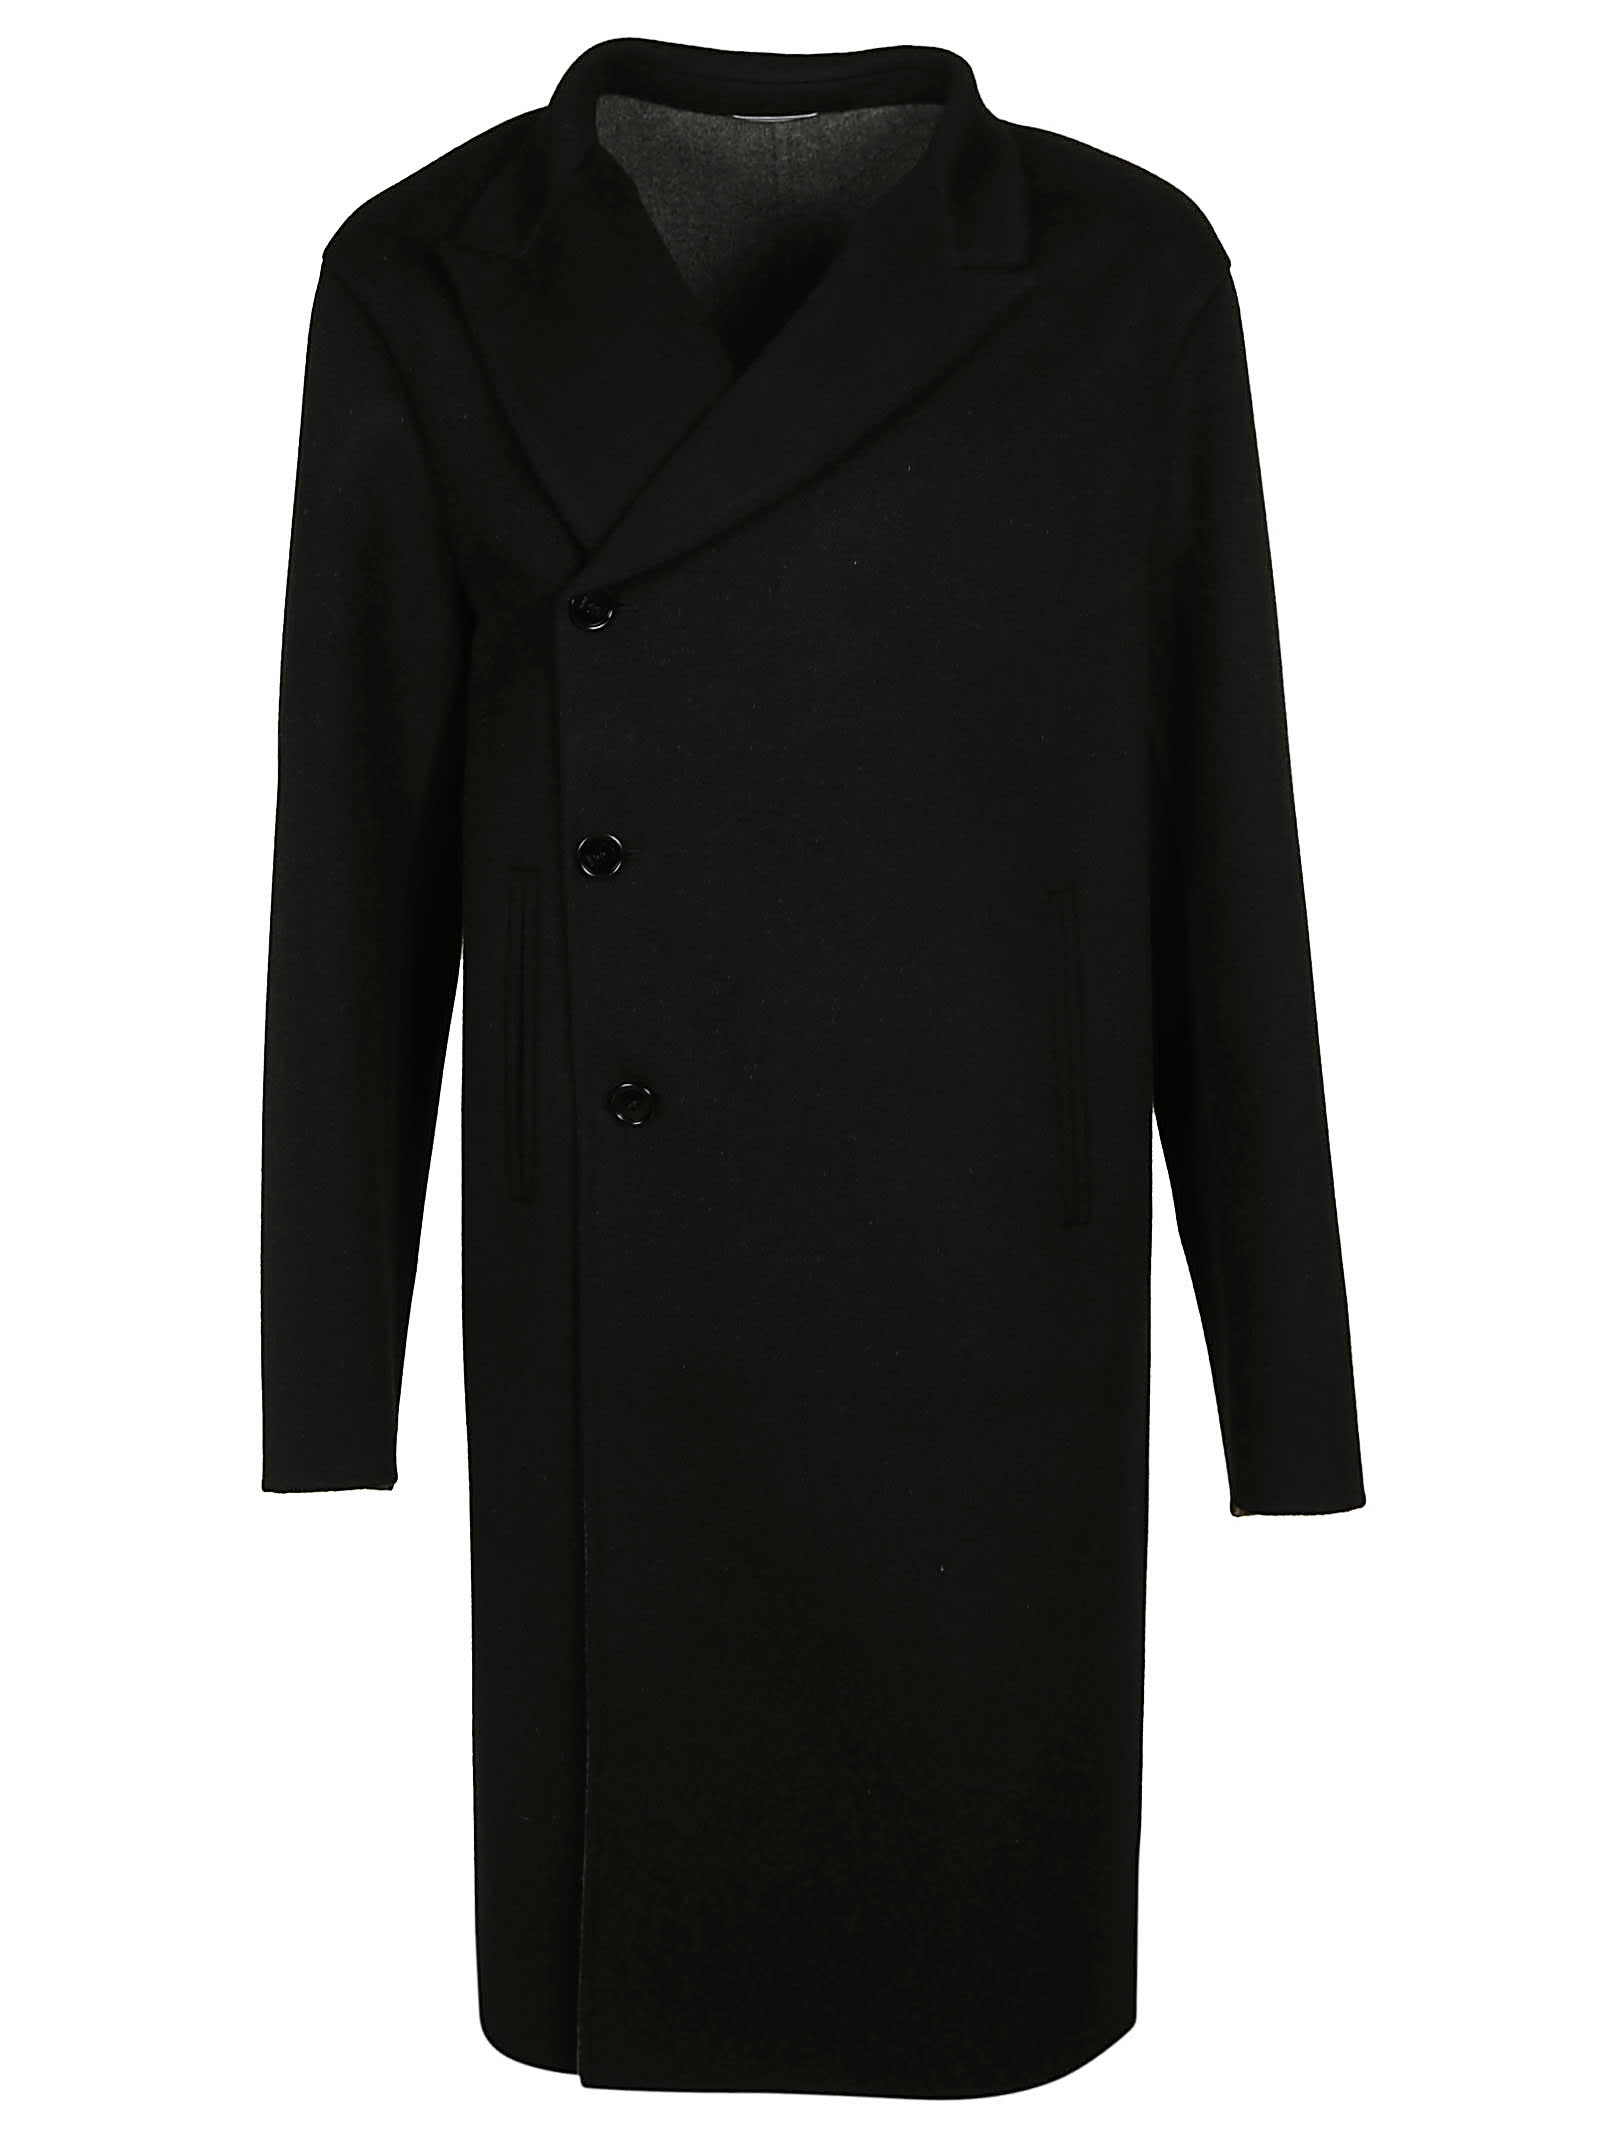 Christian Dior Buttoned Coat